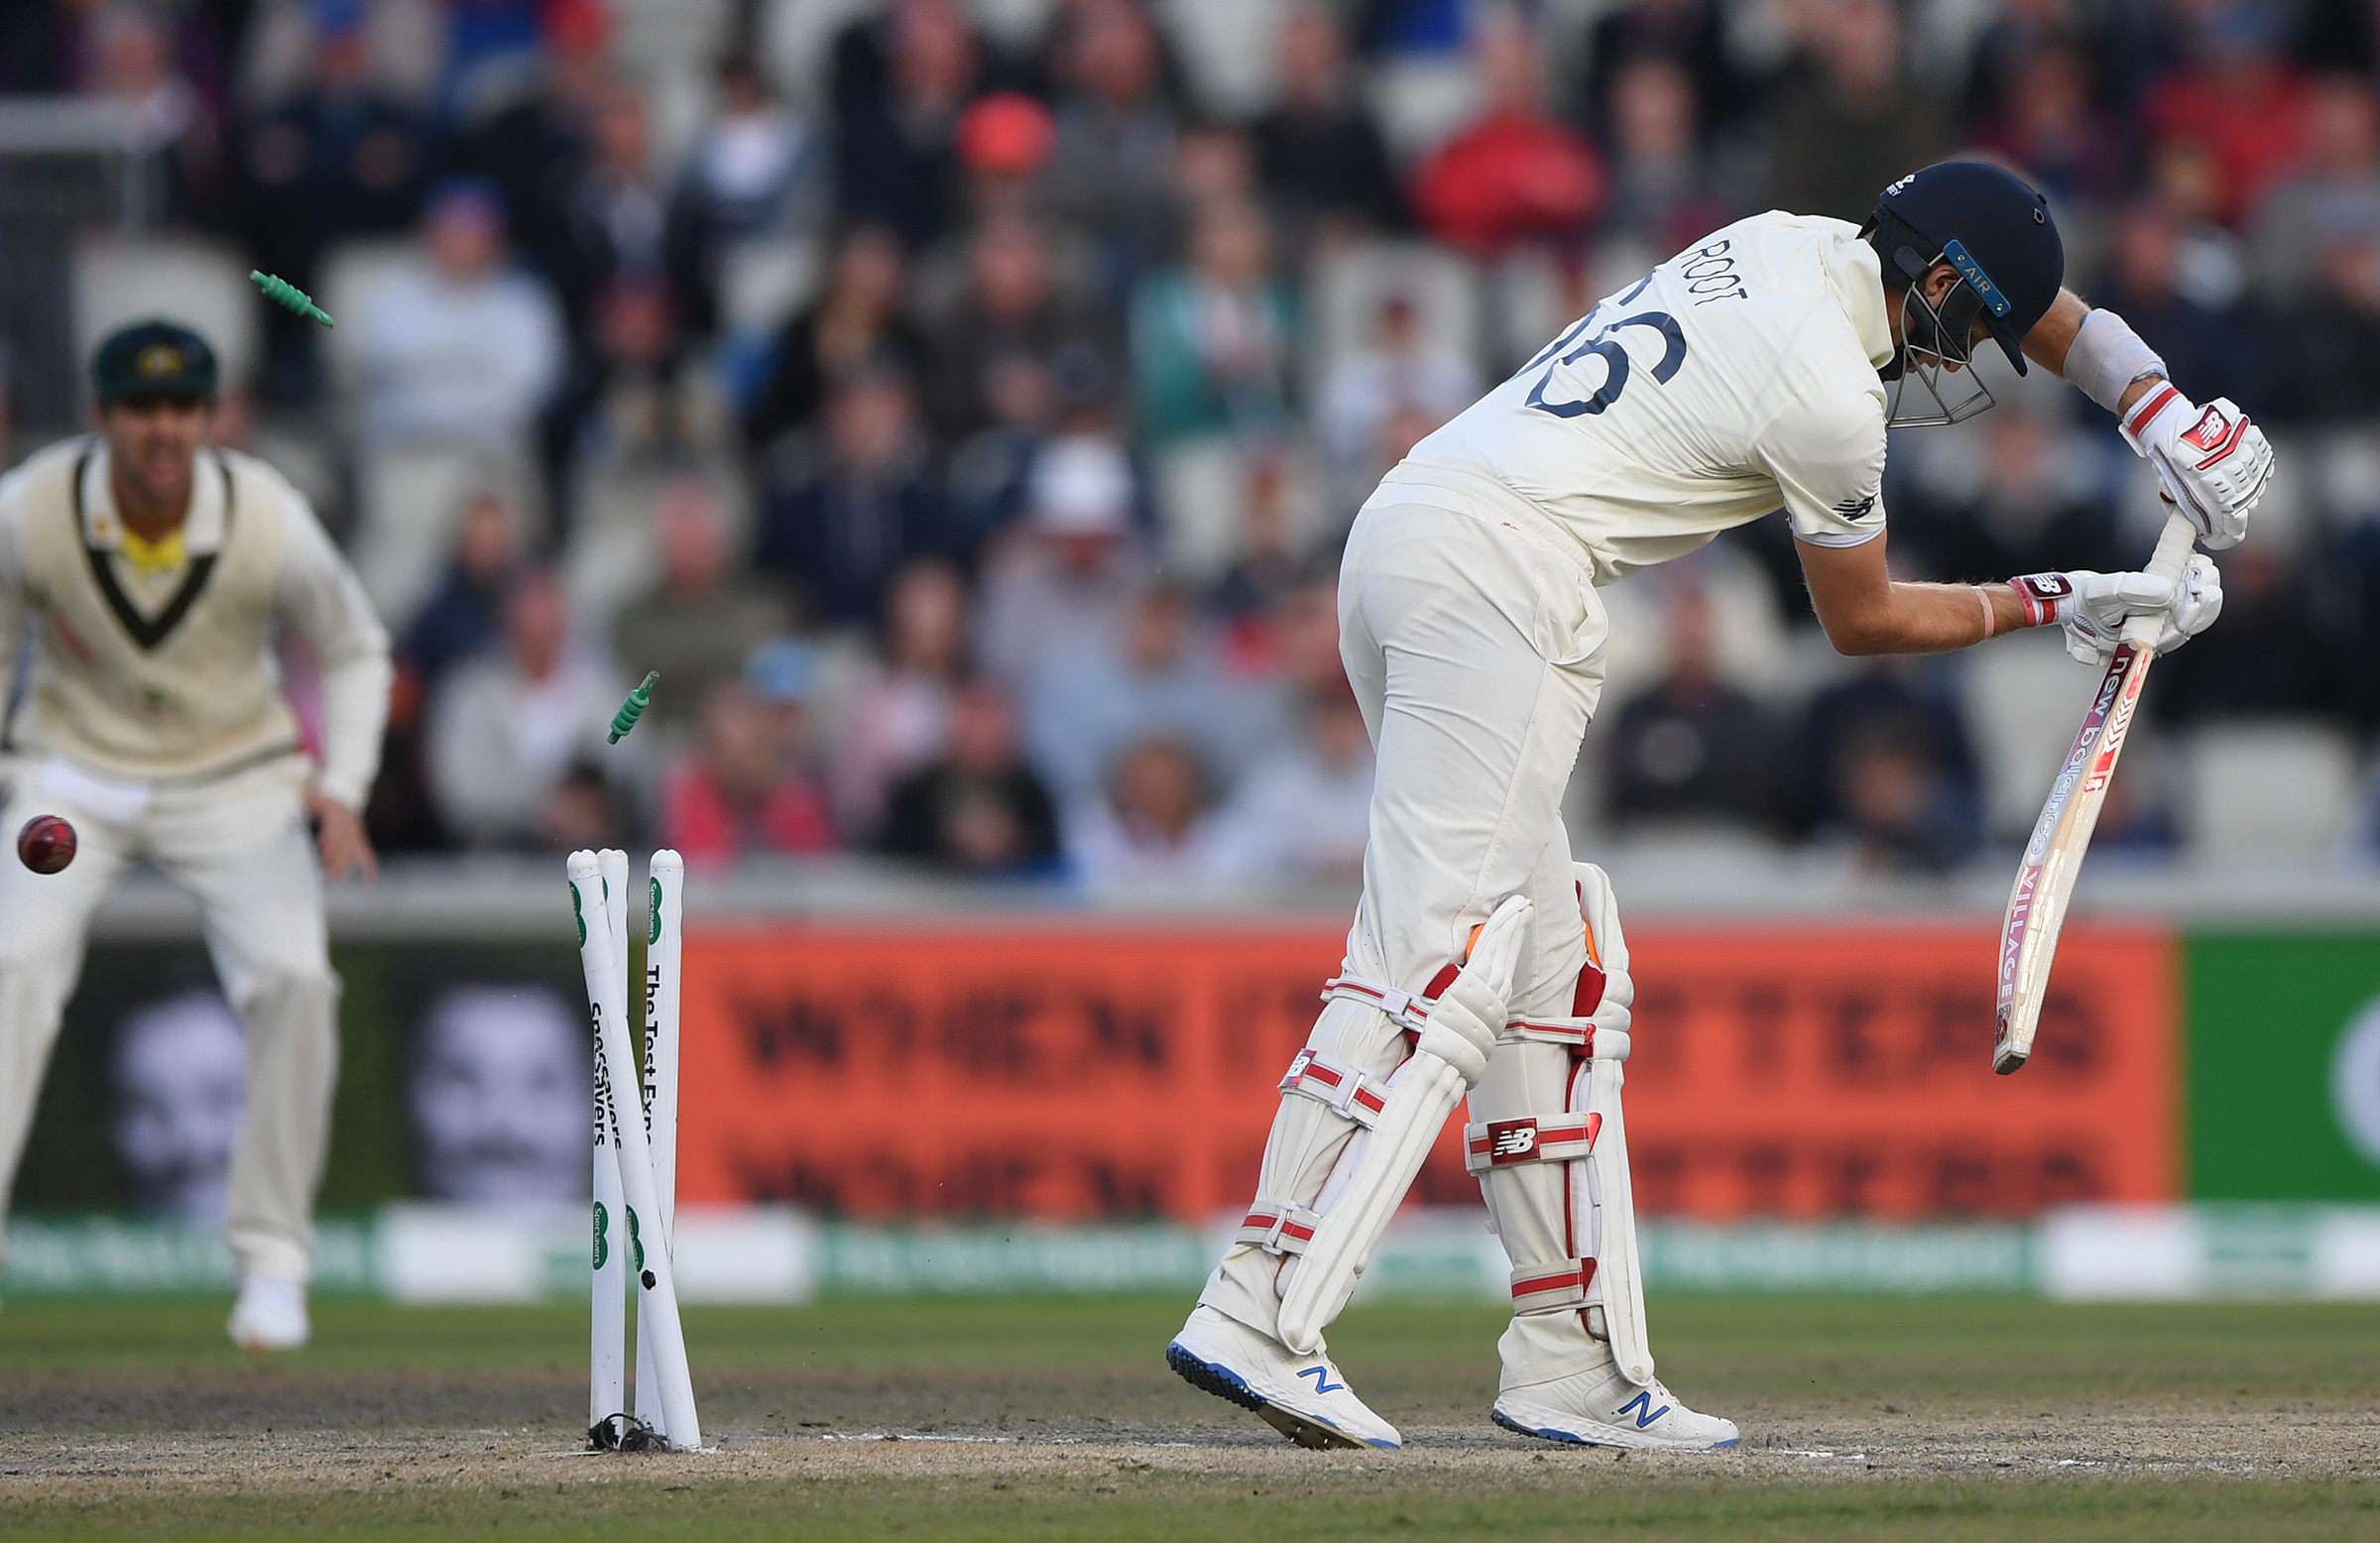 Root was bowled by a Cummins cracker // Getty